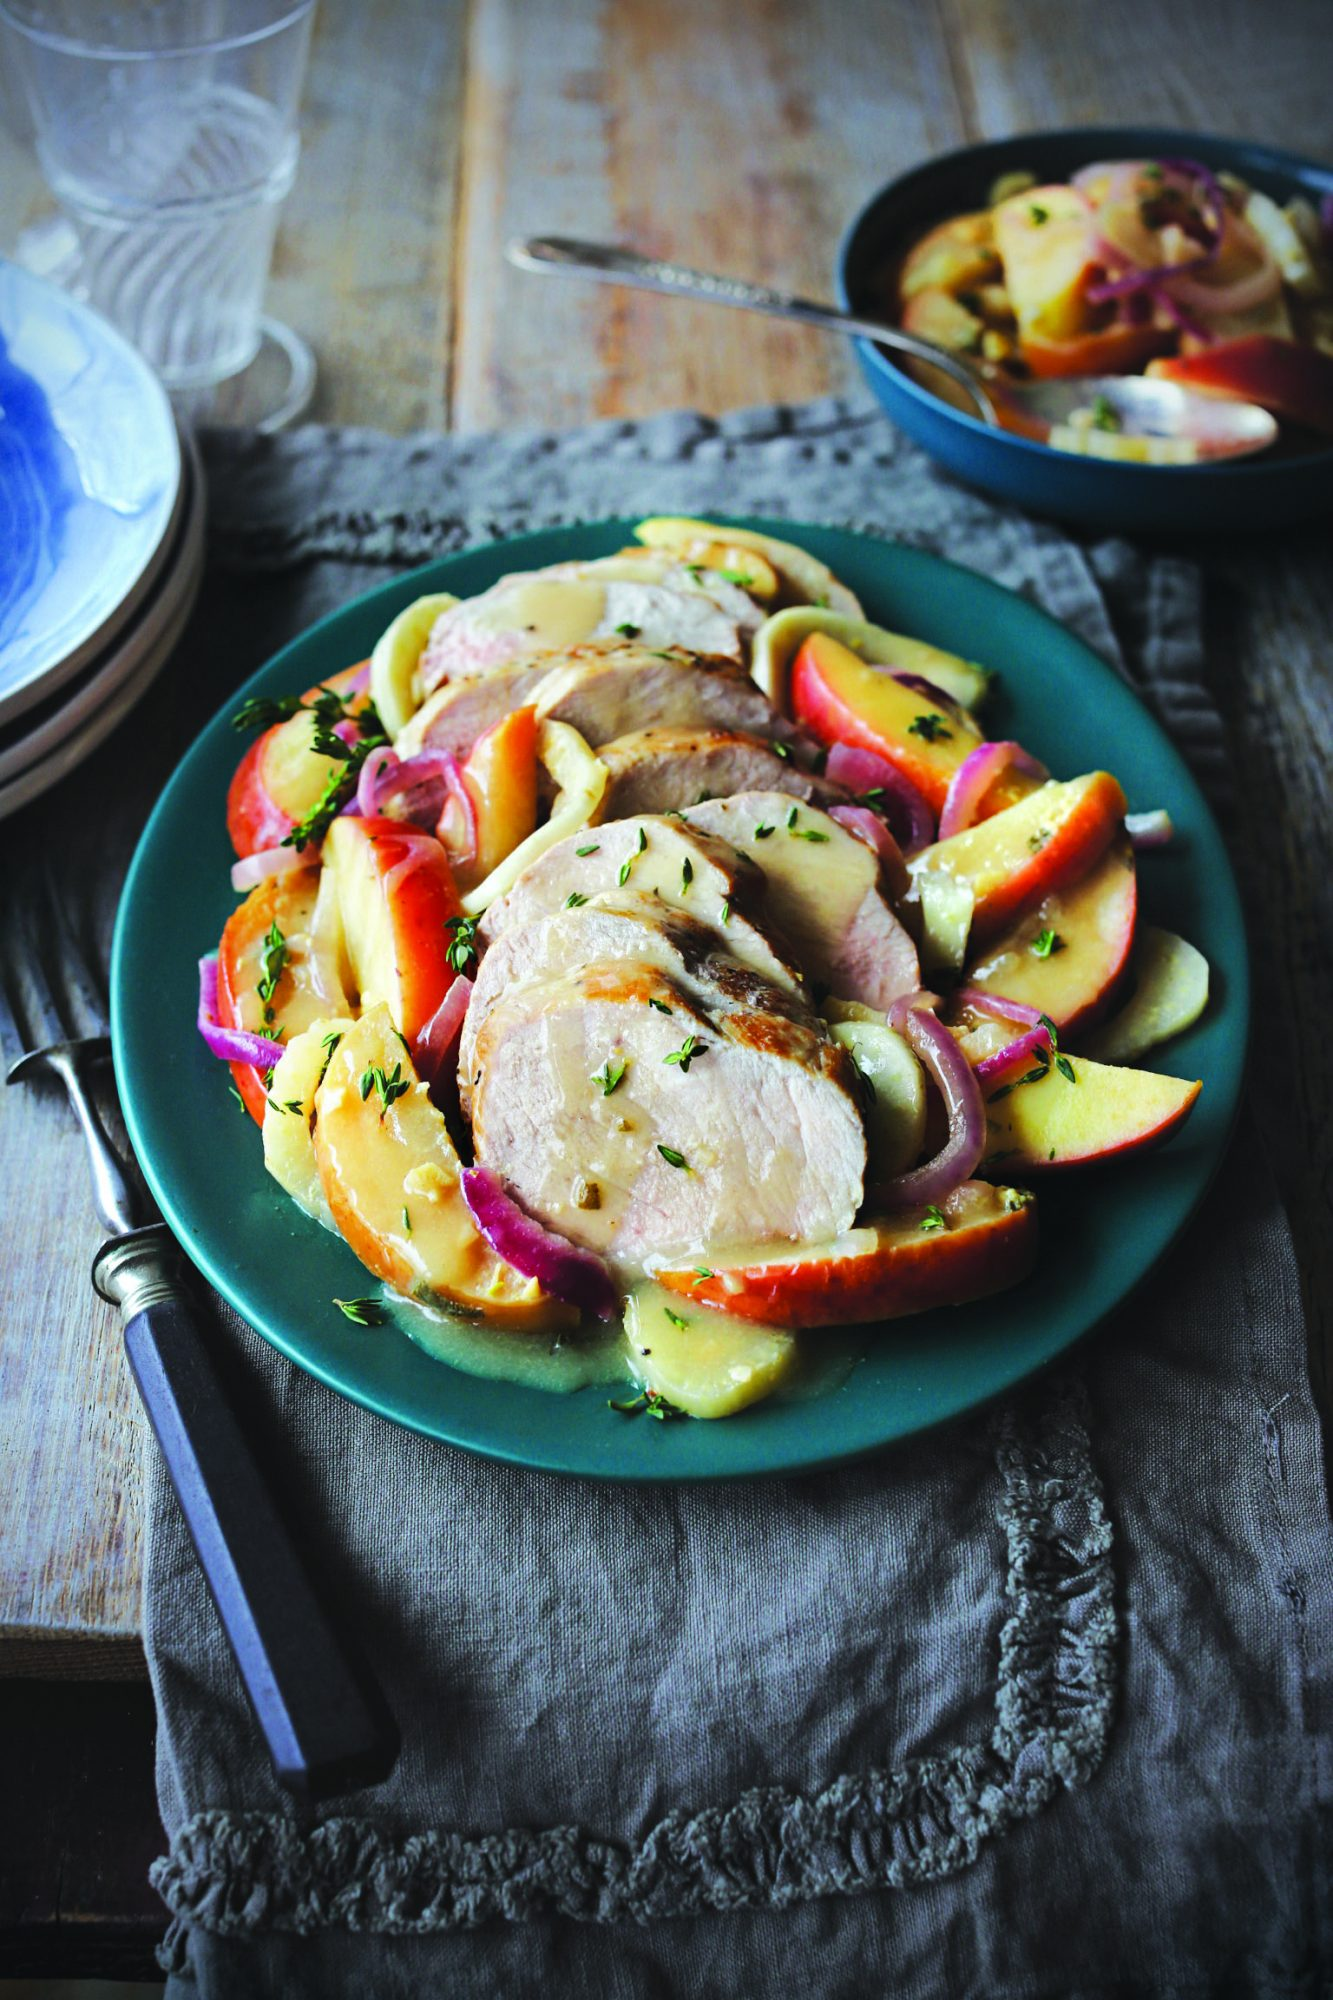 Pork Loin with Ginger, Fennel, and Apples